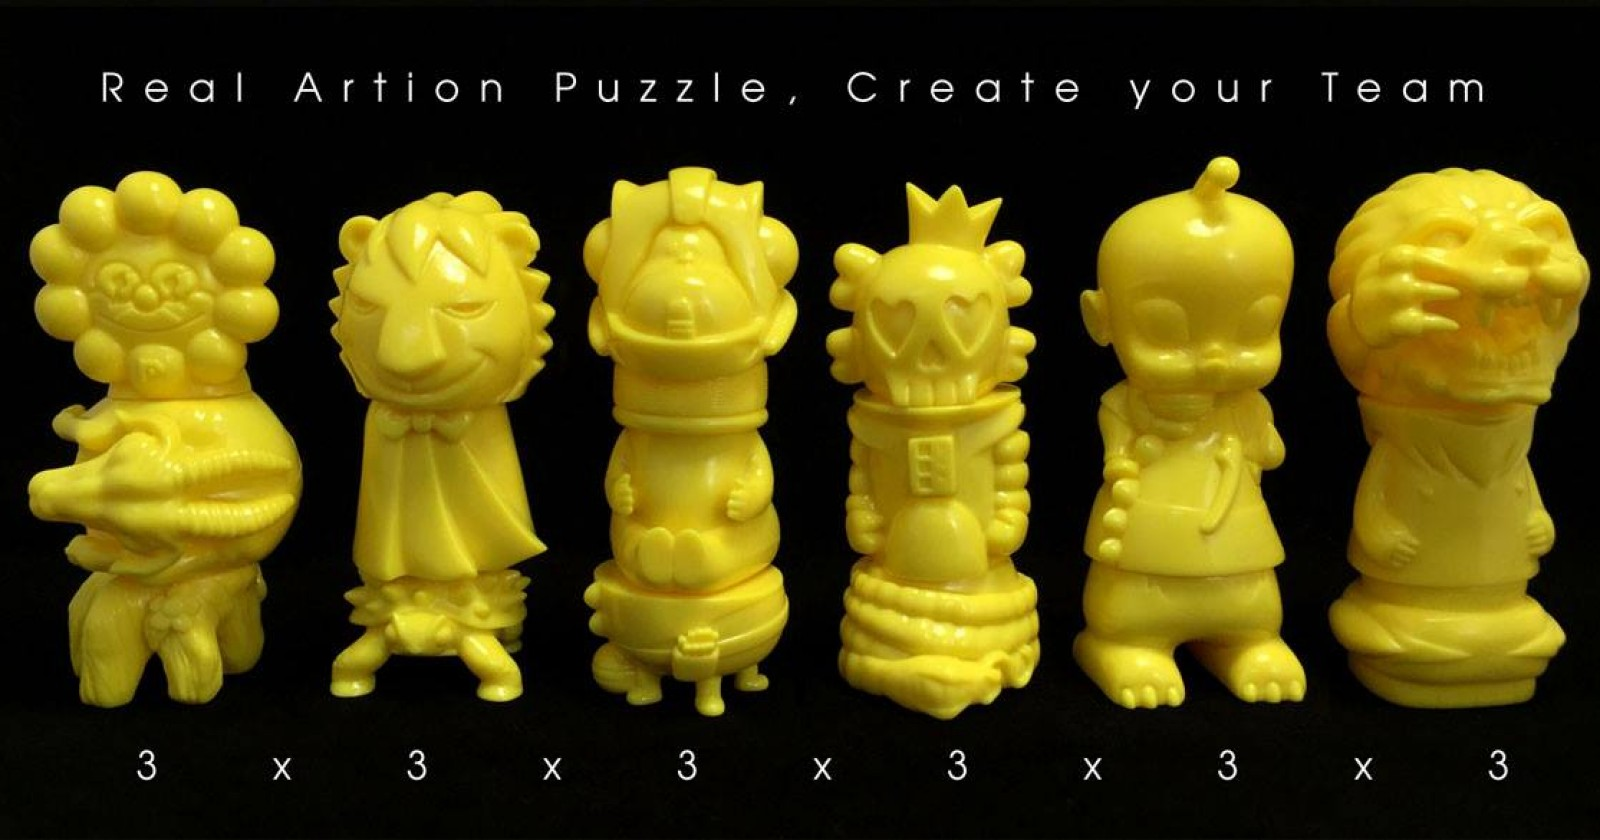 Artion Association Real Artion Puzzle clear ryan lee william tsang eric so kenny wong ben lam Unbox industries  rumbbell yellow